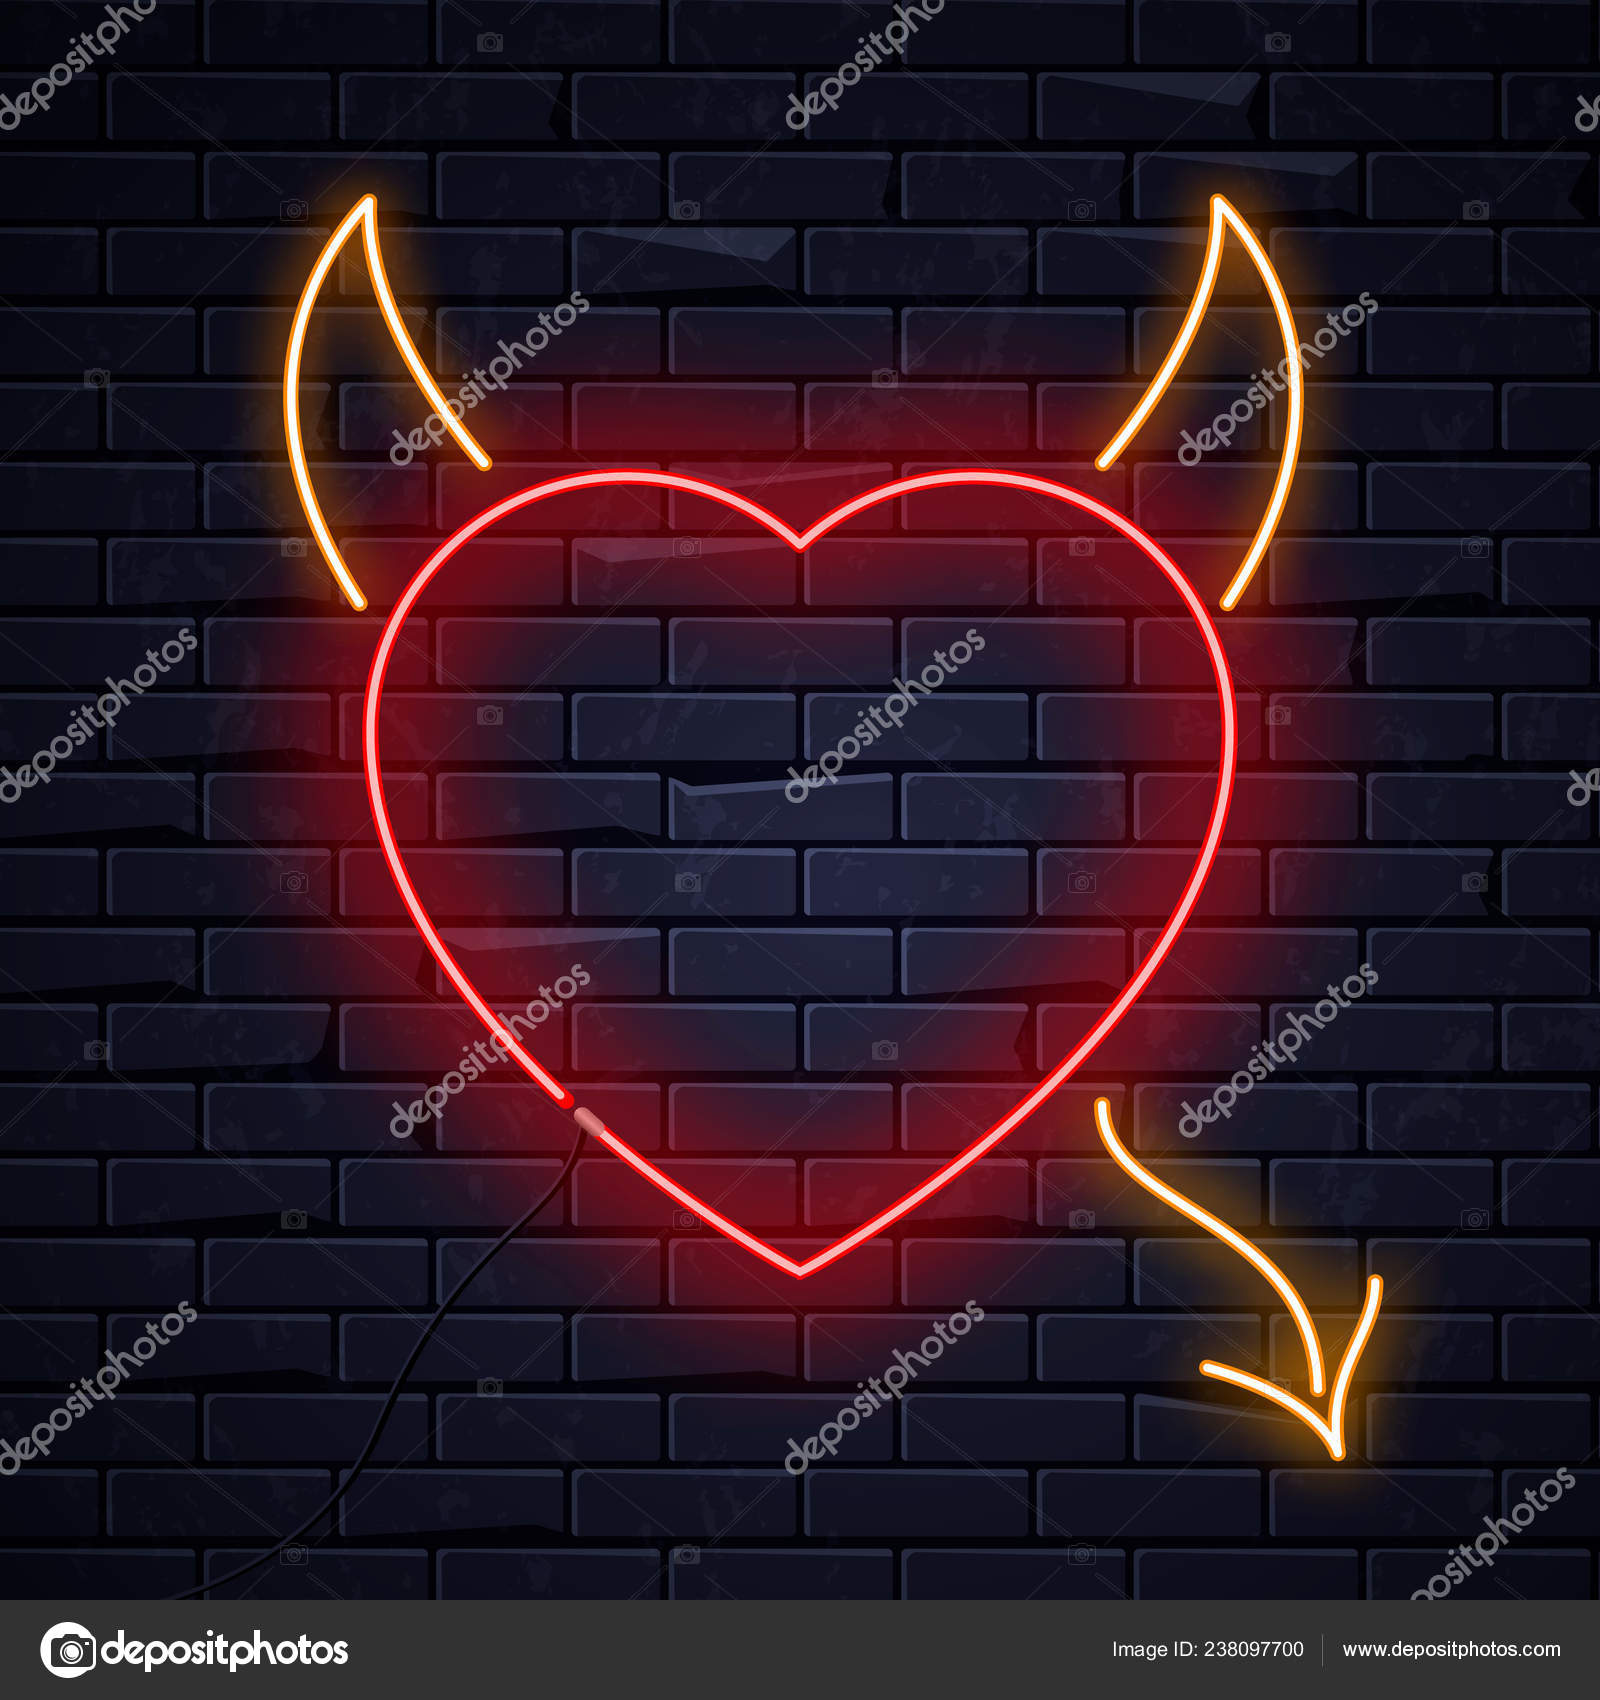 Illuminated Neon Heart Devil Horns Tail Sign Frame Light Electric Banner Glowing Black Brickwall Background Valentines Day Sex Shop Bar Concept Neons Sign Heart Devil Shape Poster Signboard Billboard Stock Vector C Stacy T 238097700